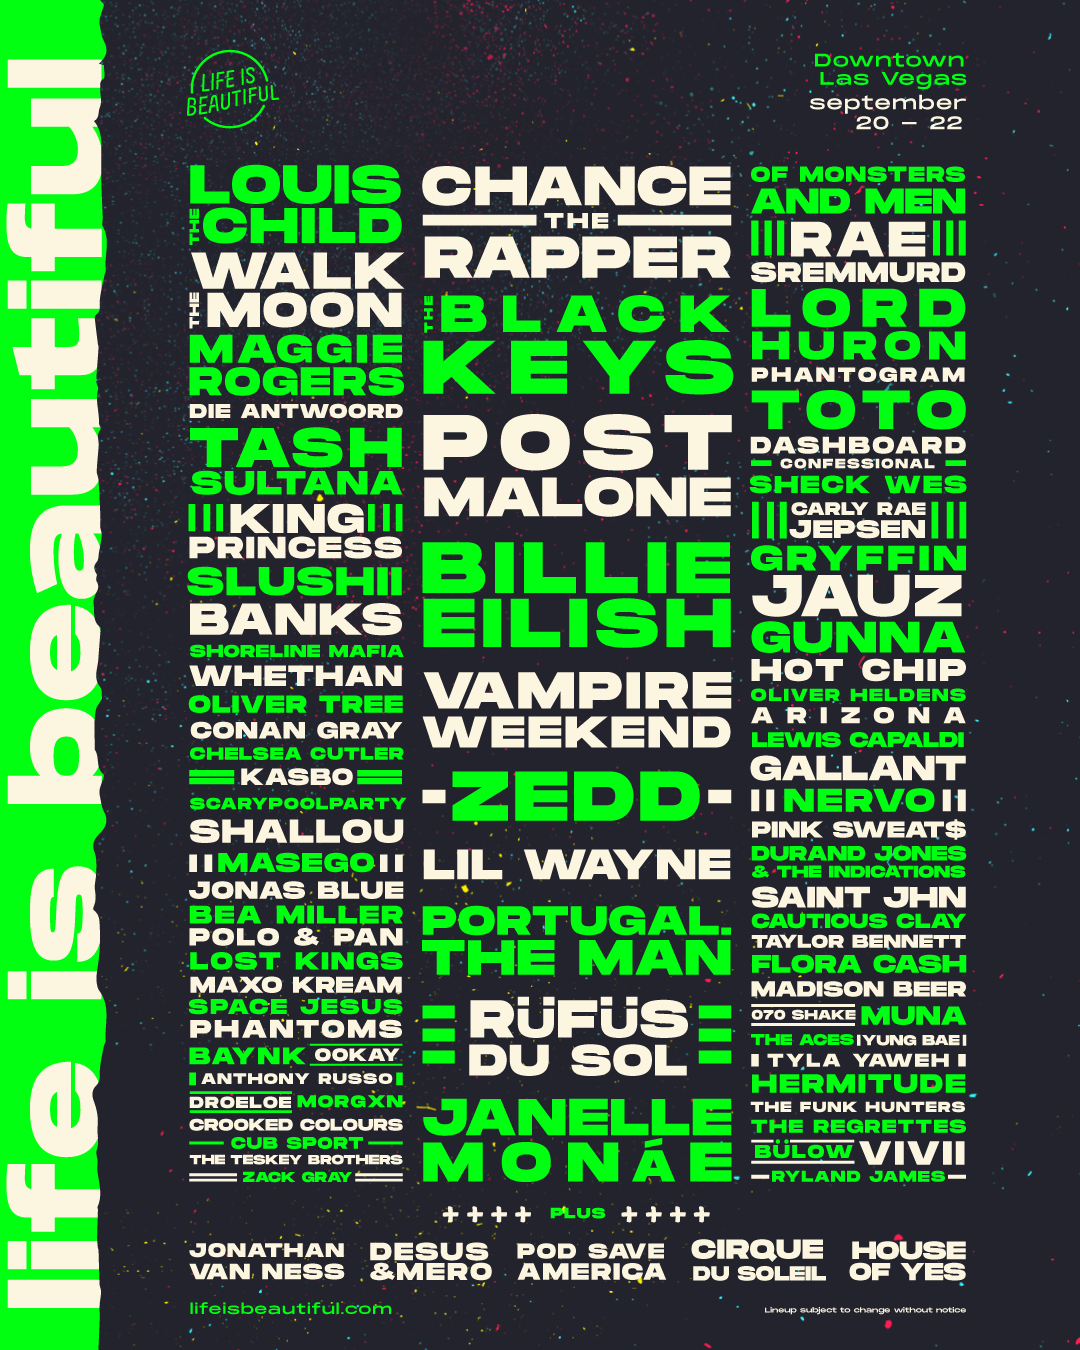 LIFE IS BEAUTIFUL 2019 Lineup